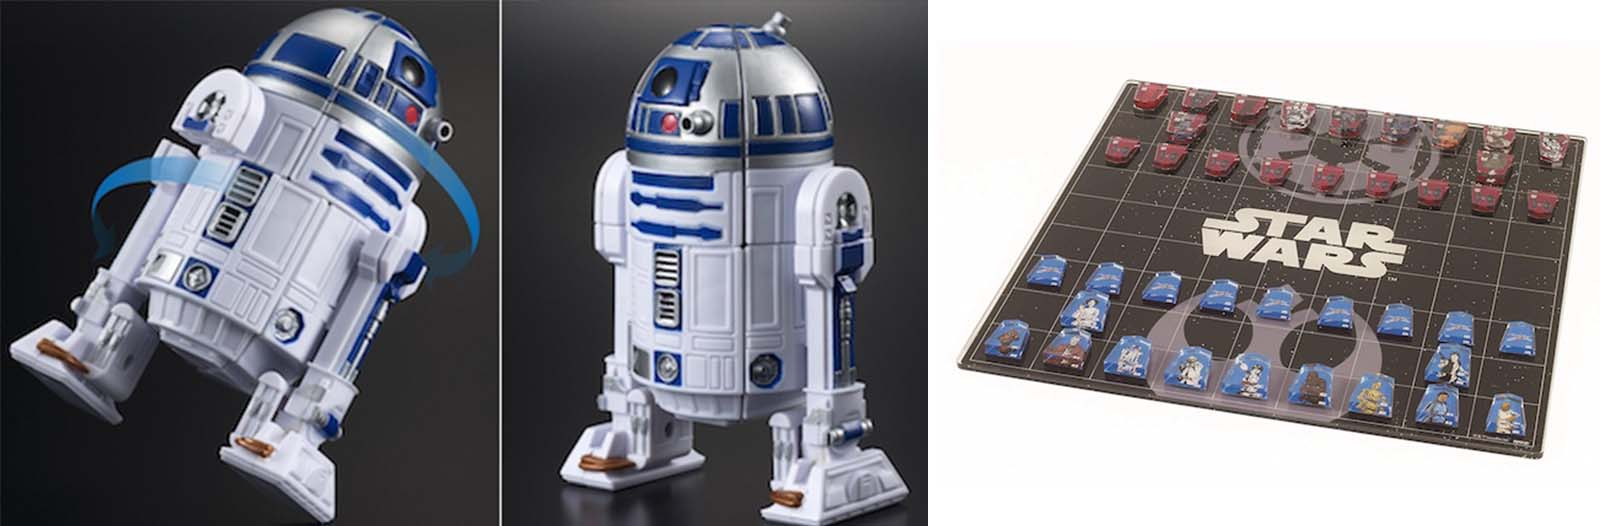 Galactic Star Wars Merch from Japan | Japan Trends on